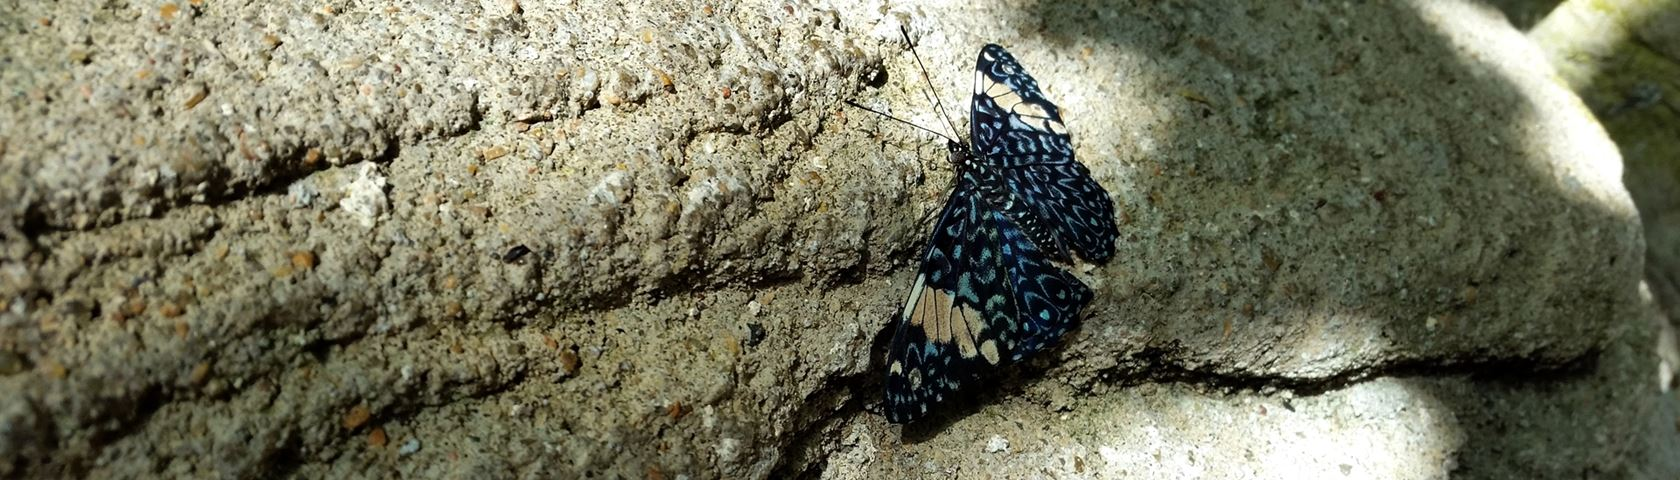 Butterfly on a Rock Wall